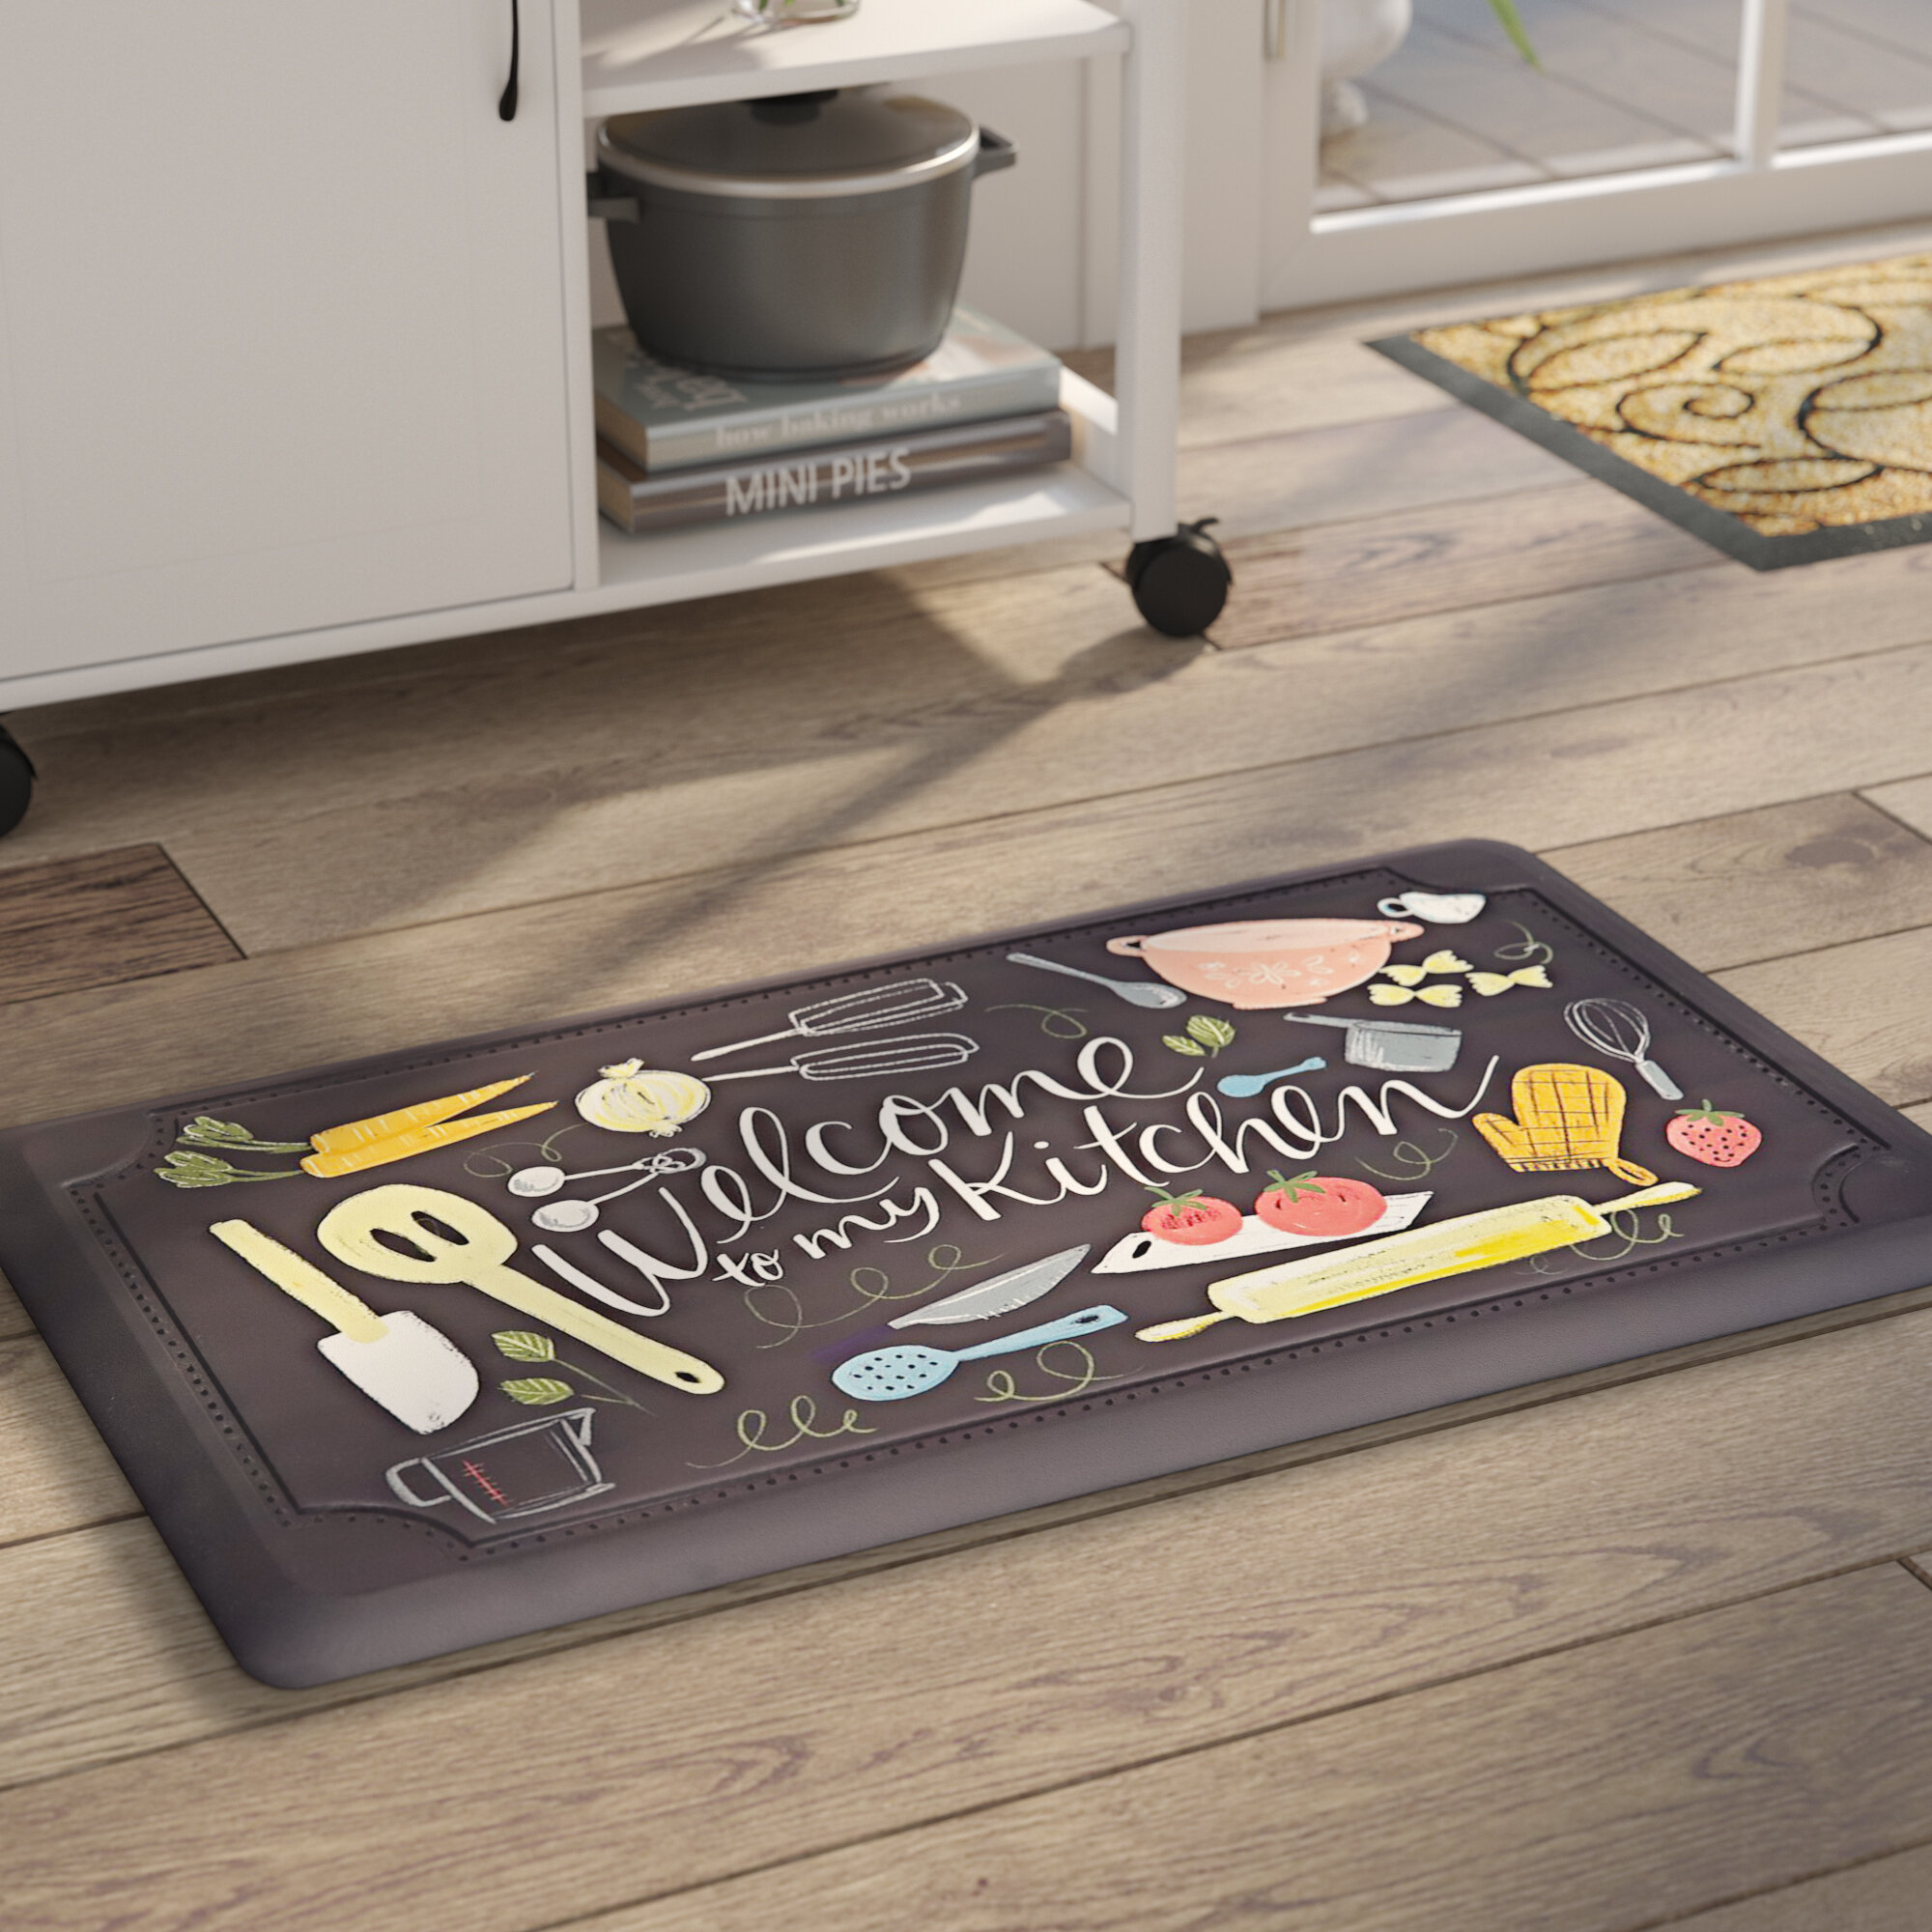 floor discount com a for black ideas floors runner rug fancy area rugs your kitchen bathroom piece kohls target and wamsutta online must decor them outdoor gold beach maroon sets charming bath set cheap